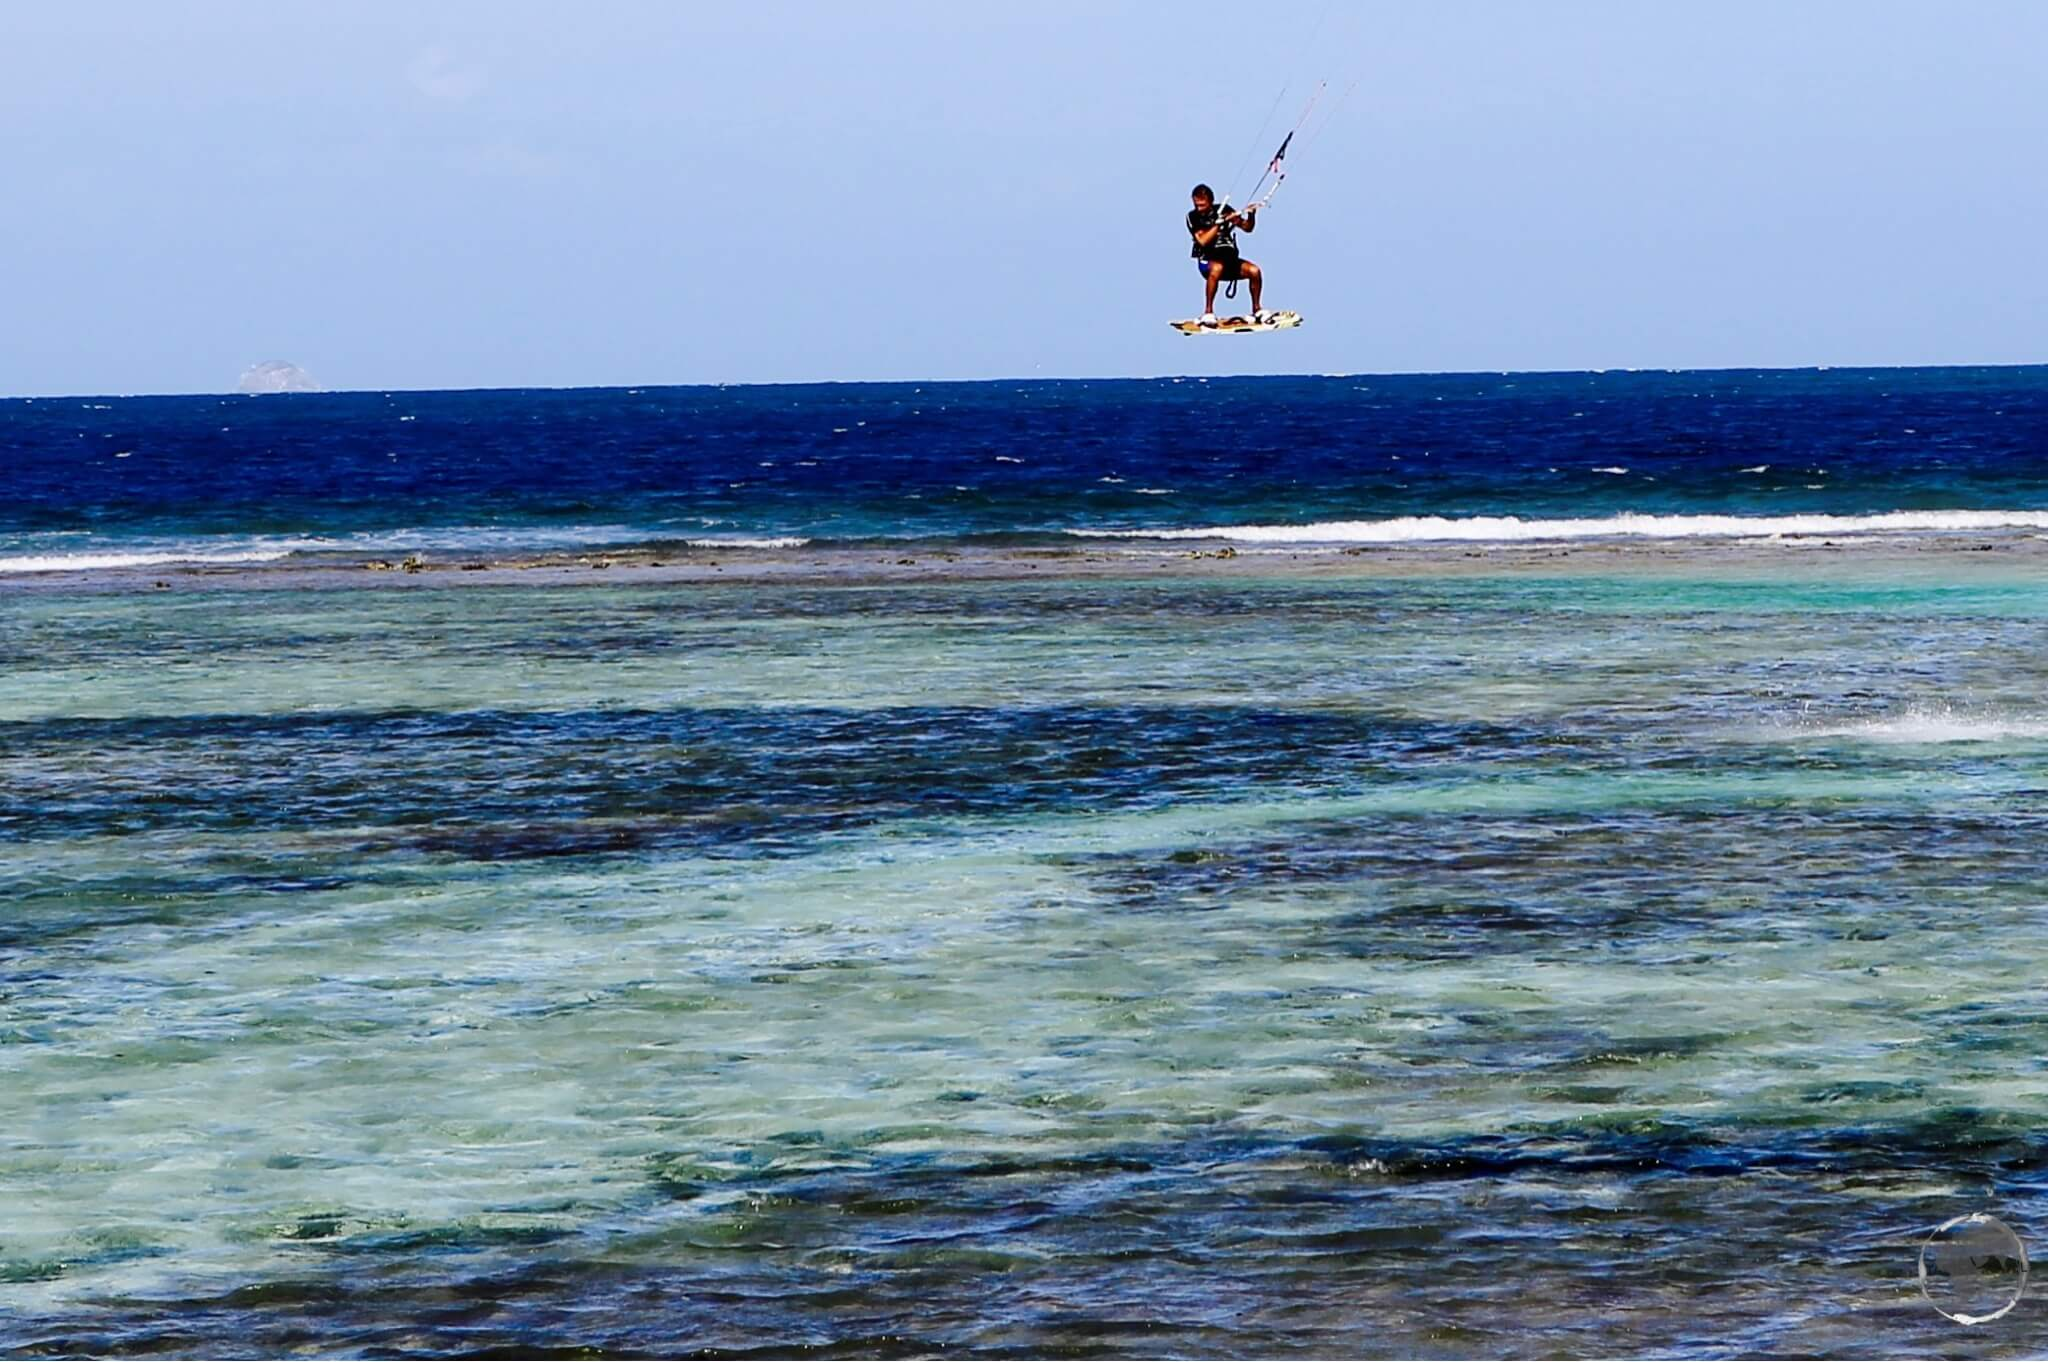 Kite surfer on Union island.